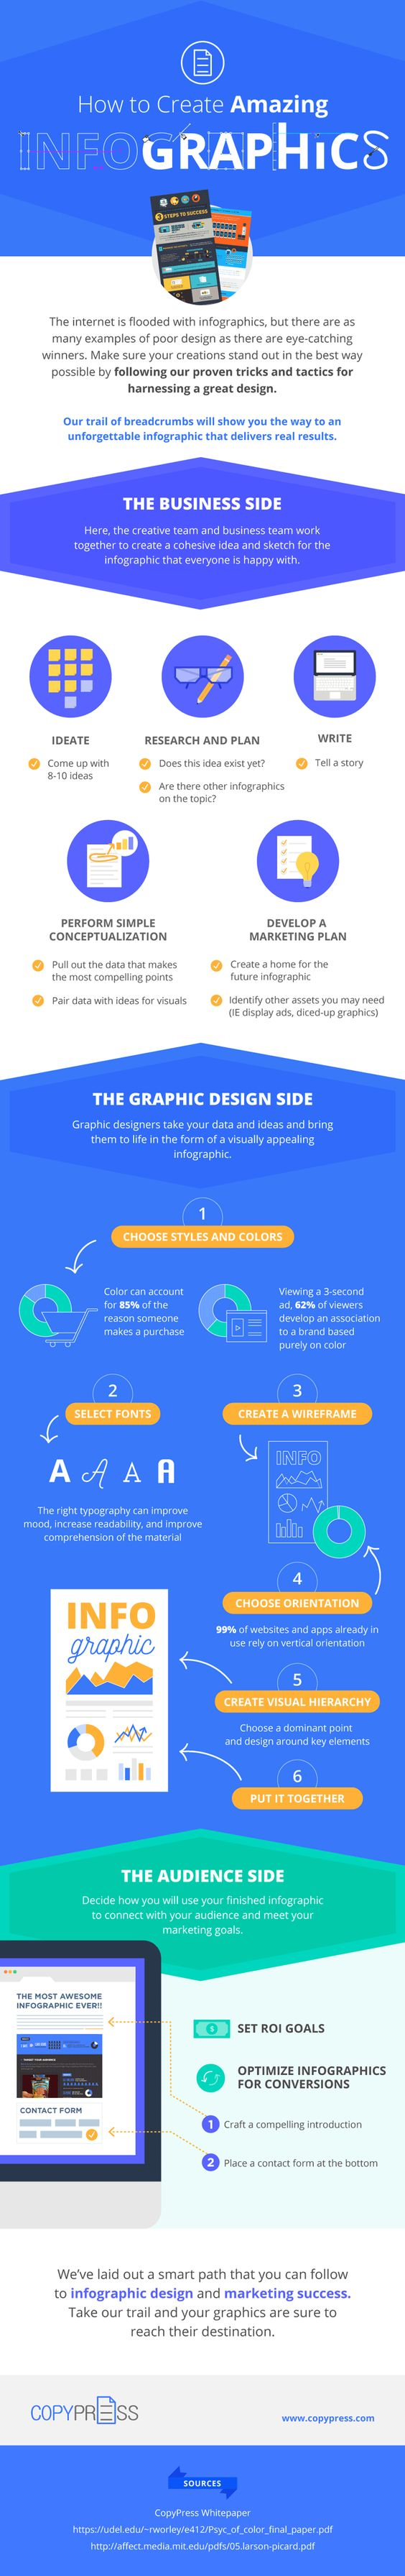 Wondering how to create an infographic? Does it seem complex and intimidating? Here are your steps to success! Click through to blog for more tips.